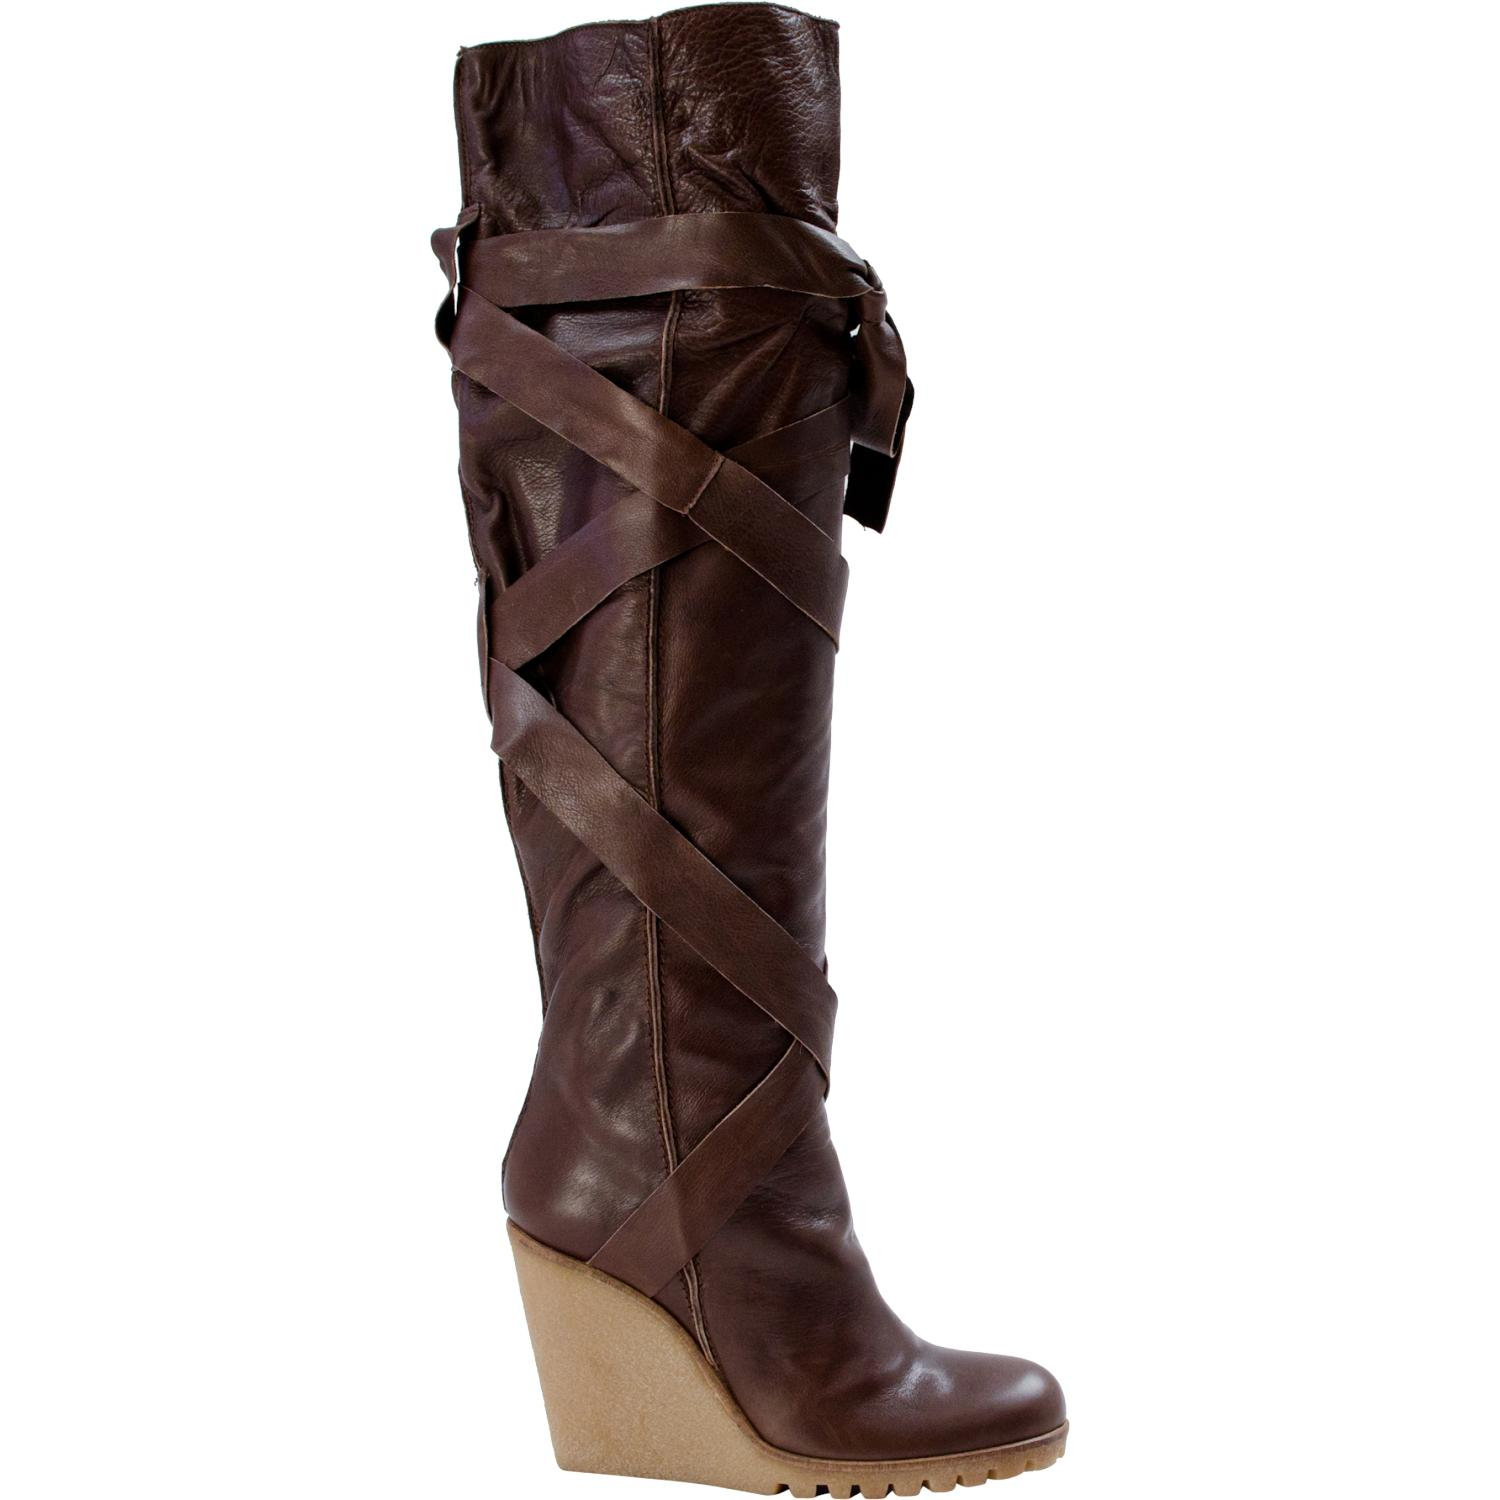 Regina Over The Knee Wedge Boots Brown Paolo Shoes